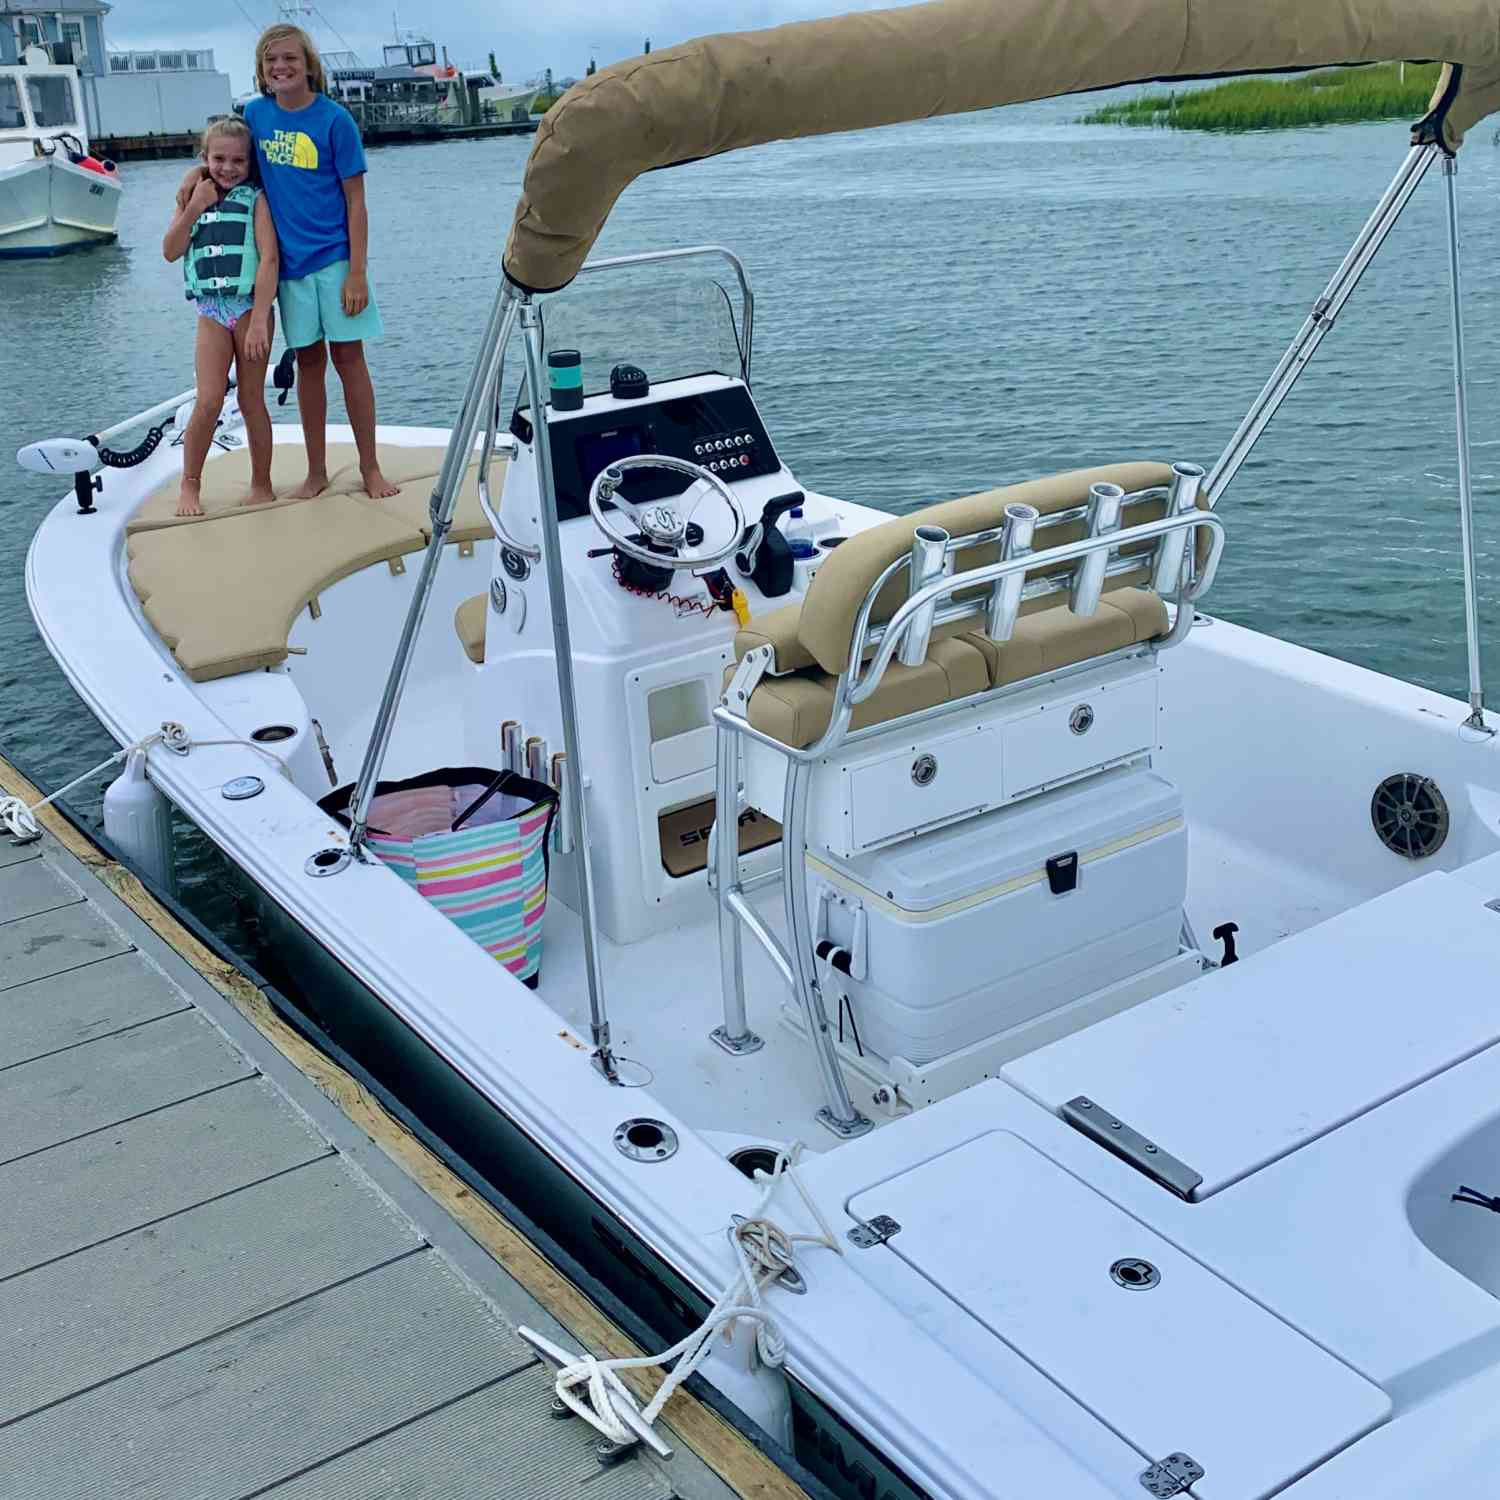 Title: Chasin' Em - On board their Sportsman Masters 207 Bay Boat - Location: Murrells Inlet, SC. Participating in the Photo Contest #SportsmanMay2021